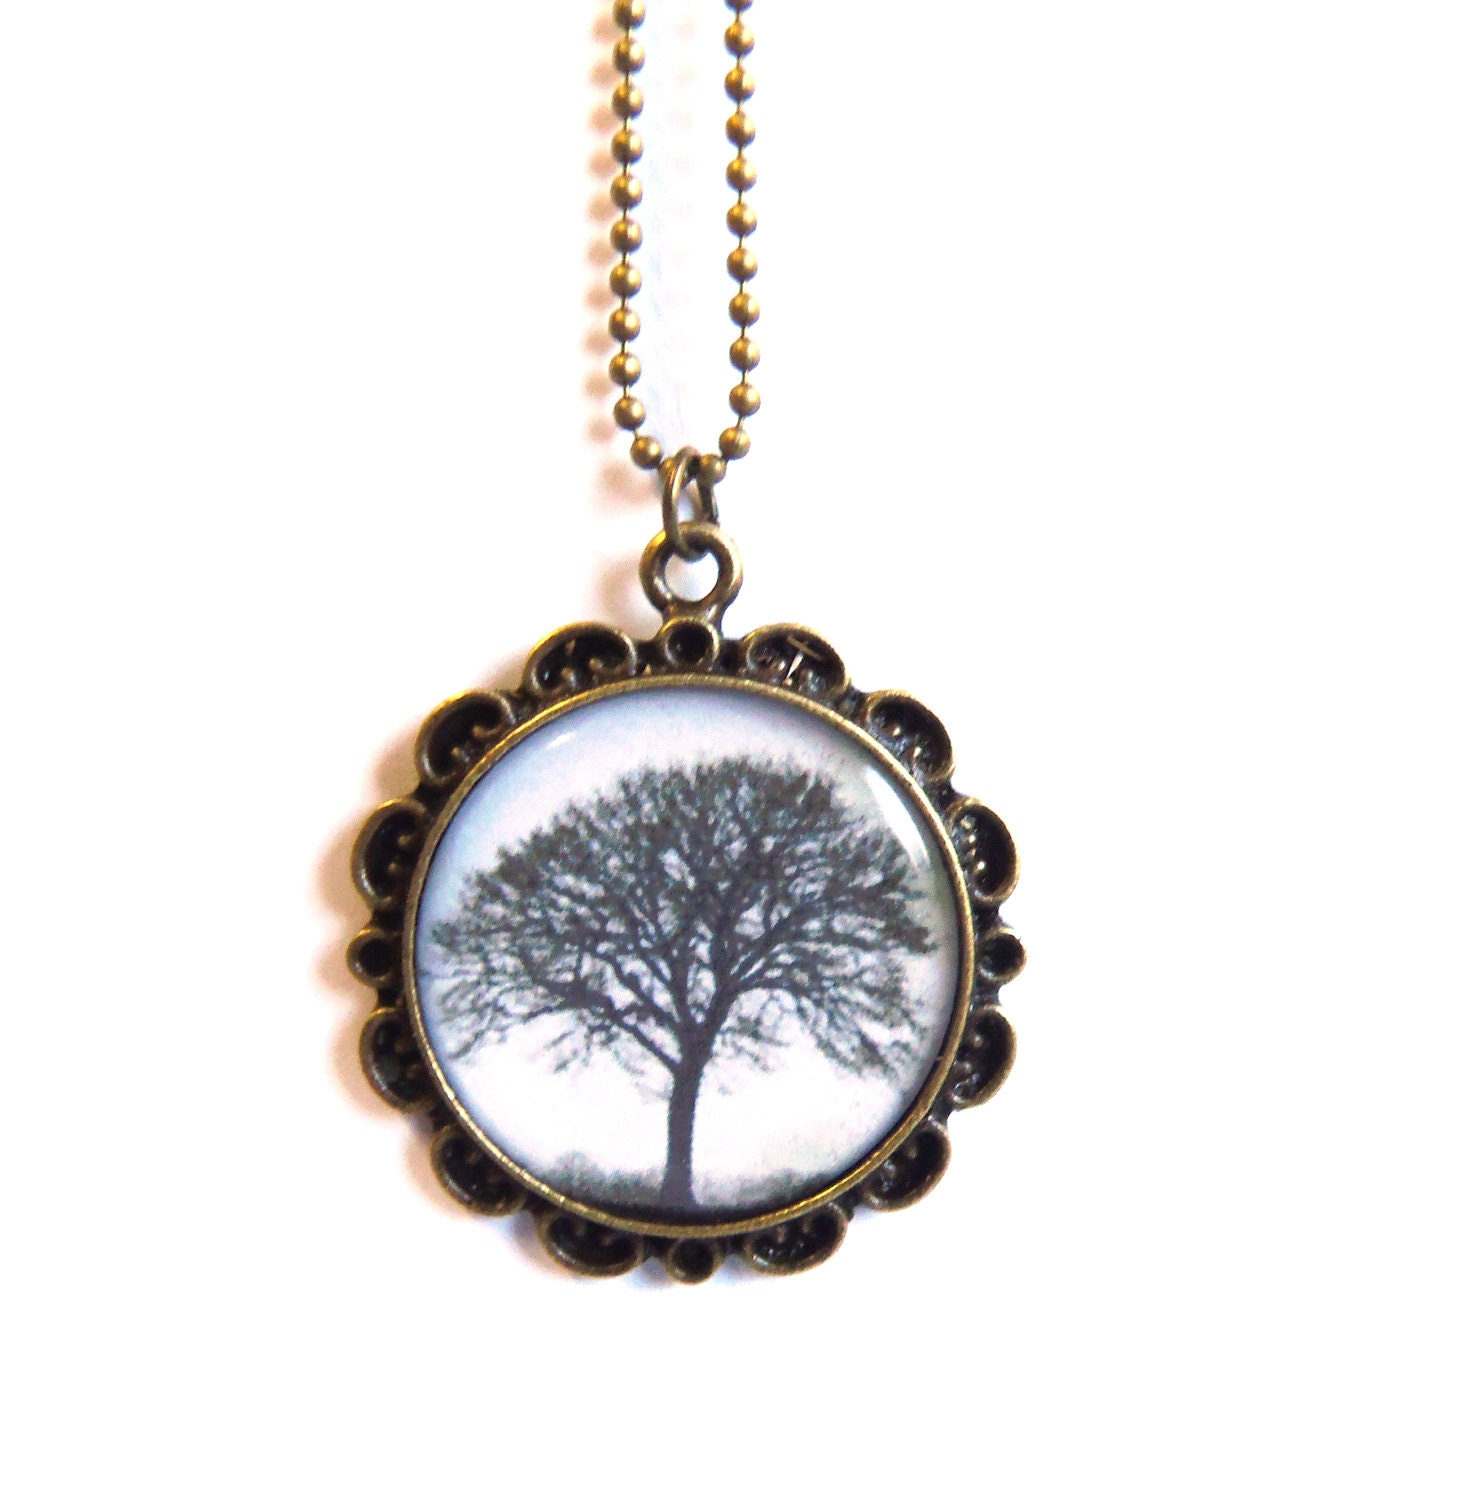 Tree necklace with antique brass floral pendant base - agatechristina